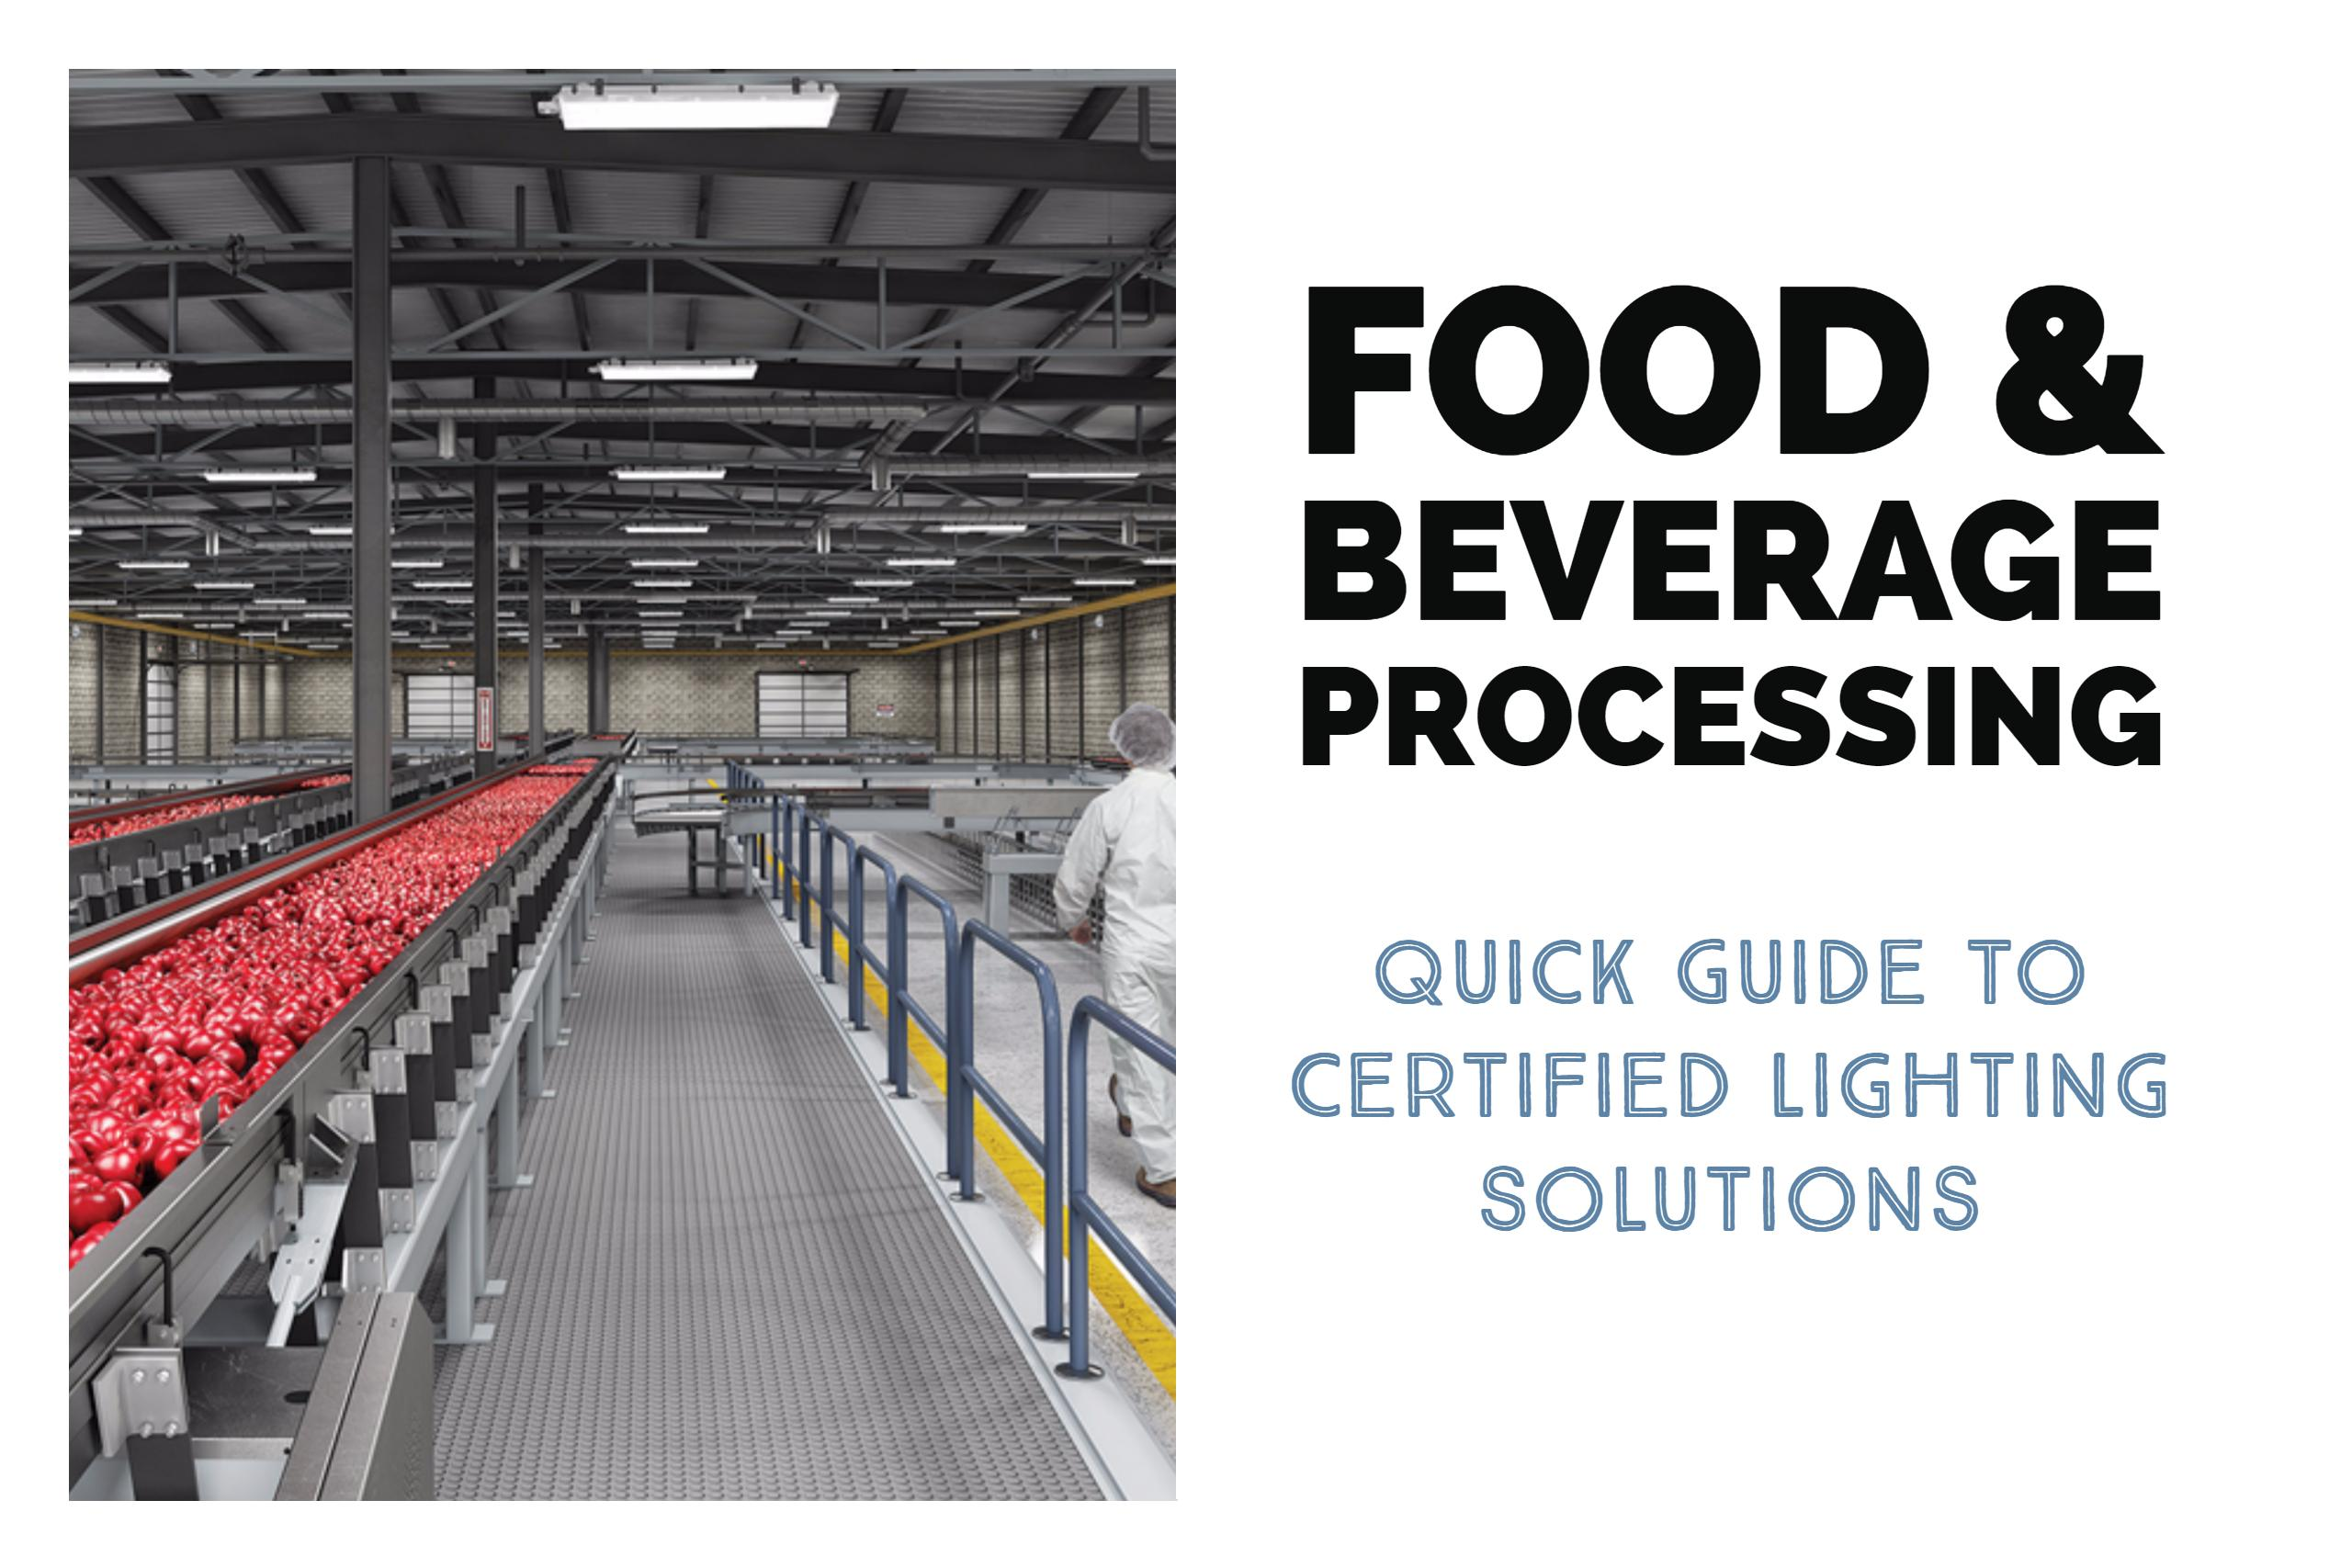 Food & Beverage Processing Lighting Solutions Guide